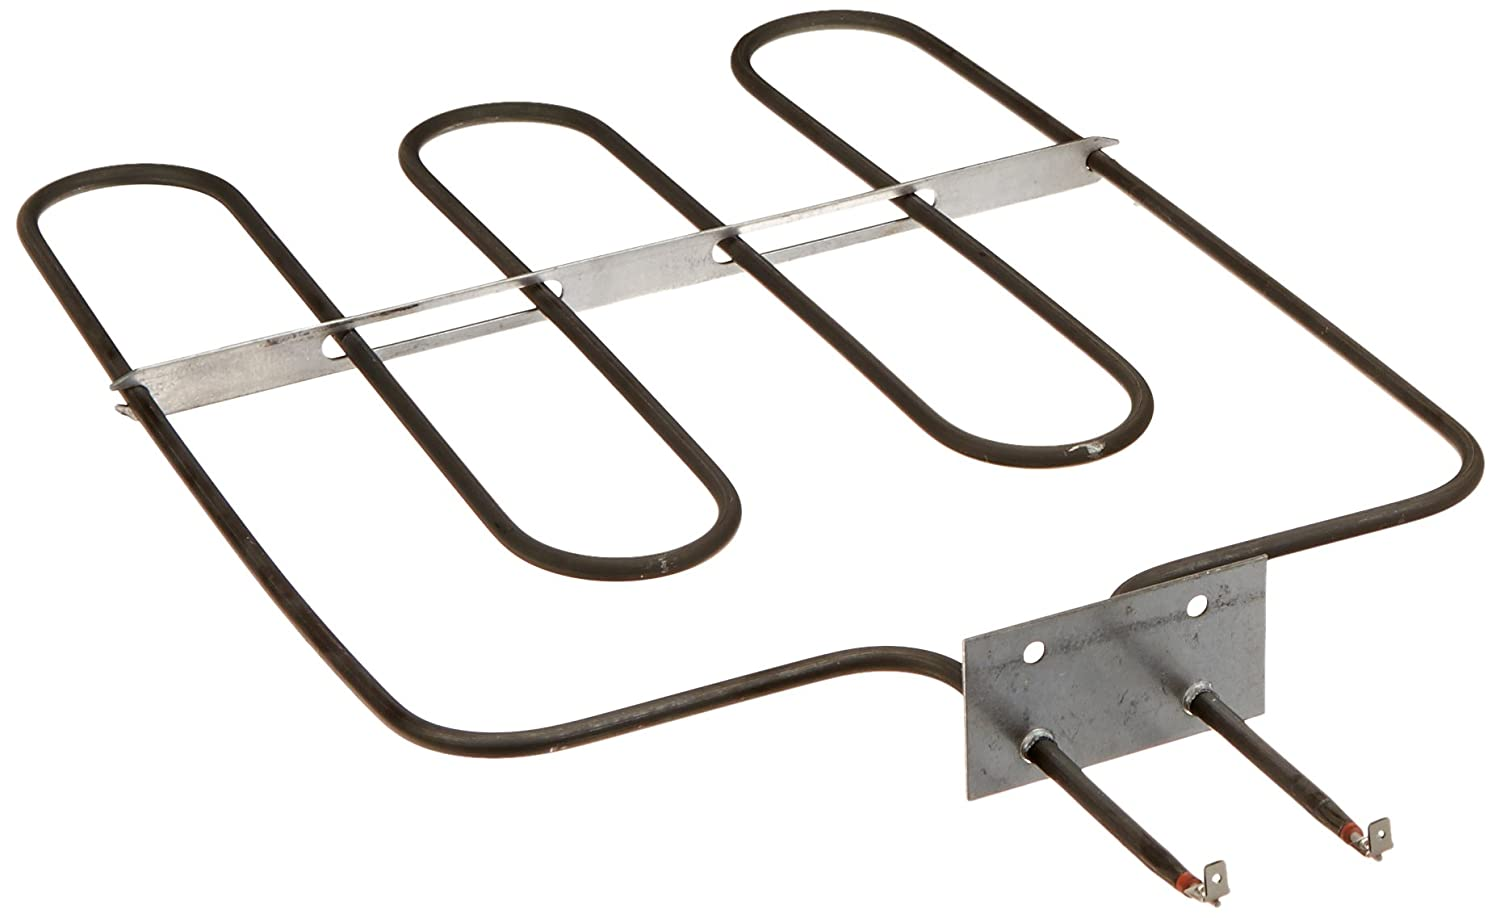 Frigidaire 318255606 Range/Stove/Oven Broil Element